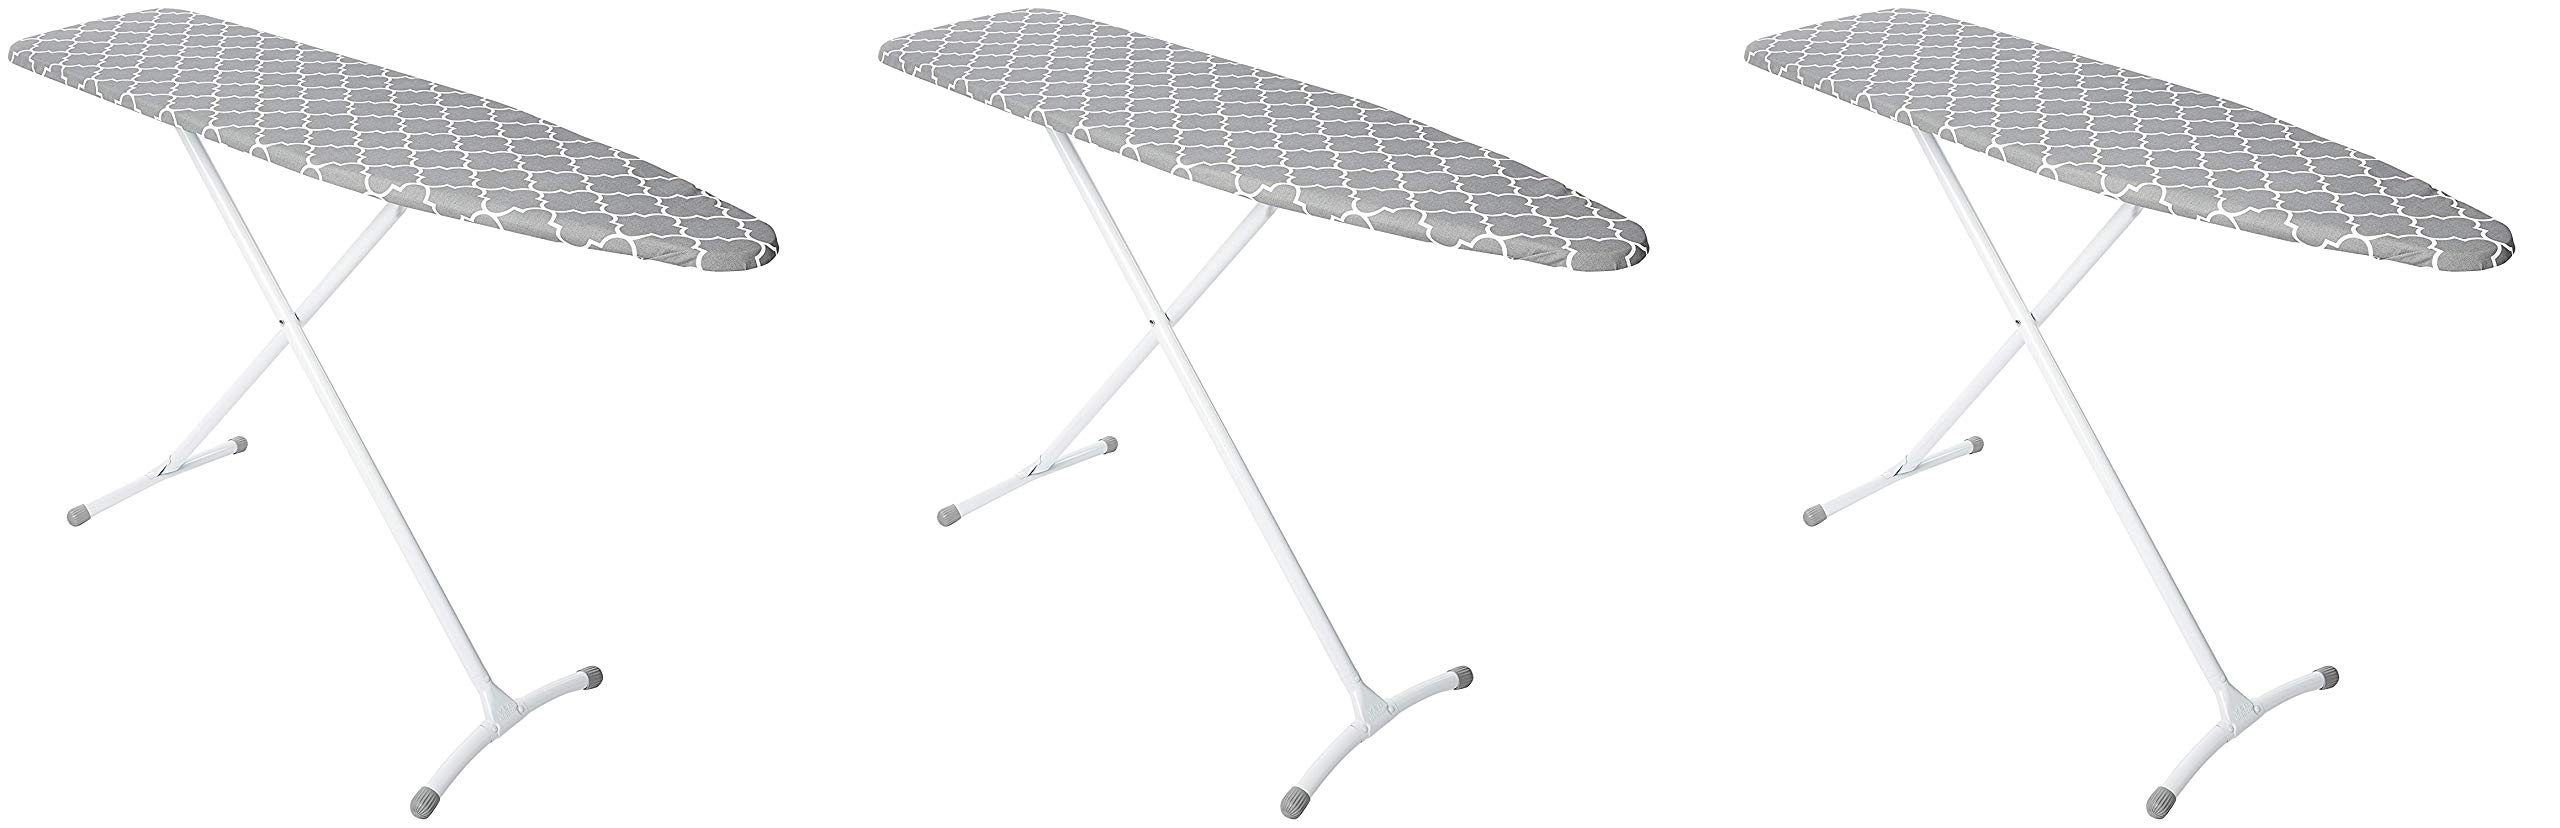 Homz Contour Steel Top Ironing Board, Grey & White Filigree Cover (Pack of 3)